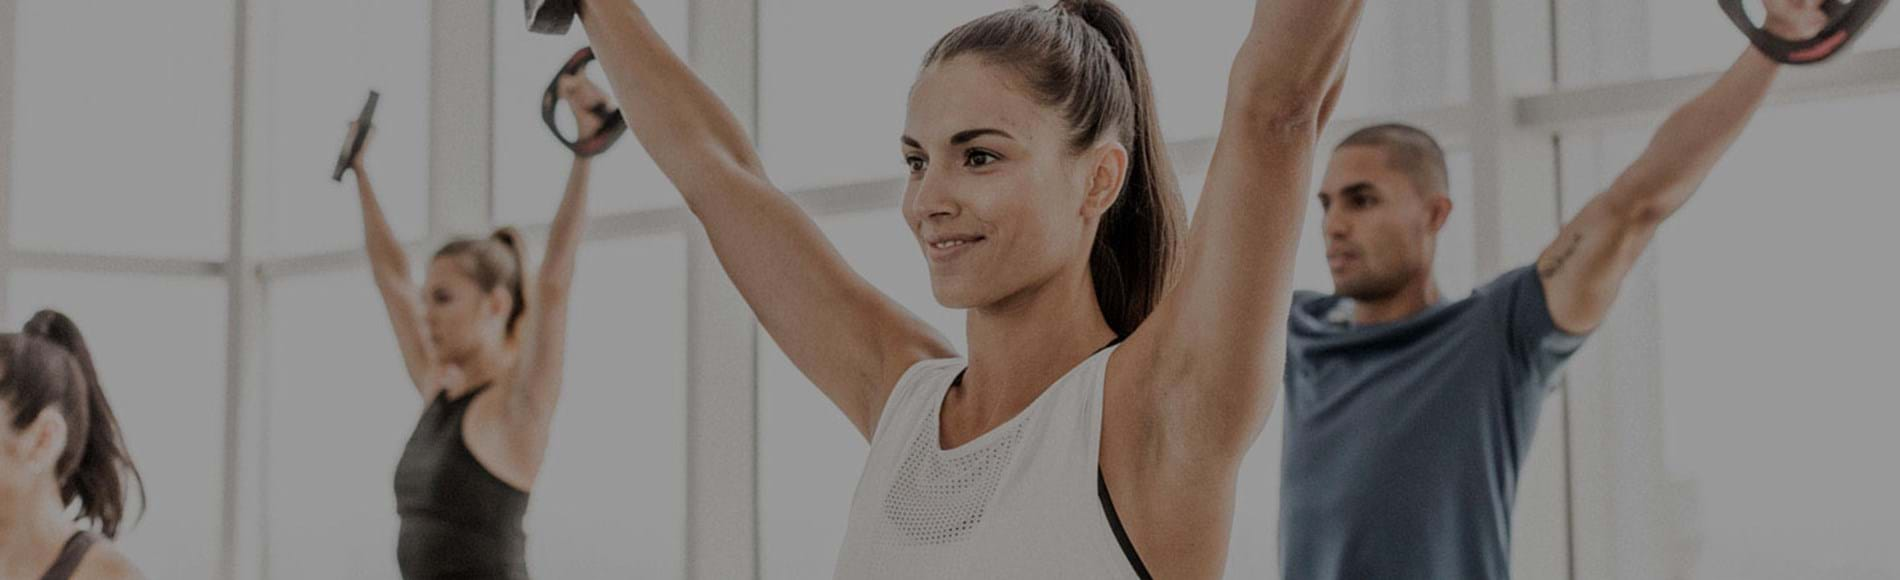 Les Mills Taking Fitness To The Next Level